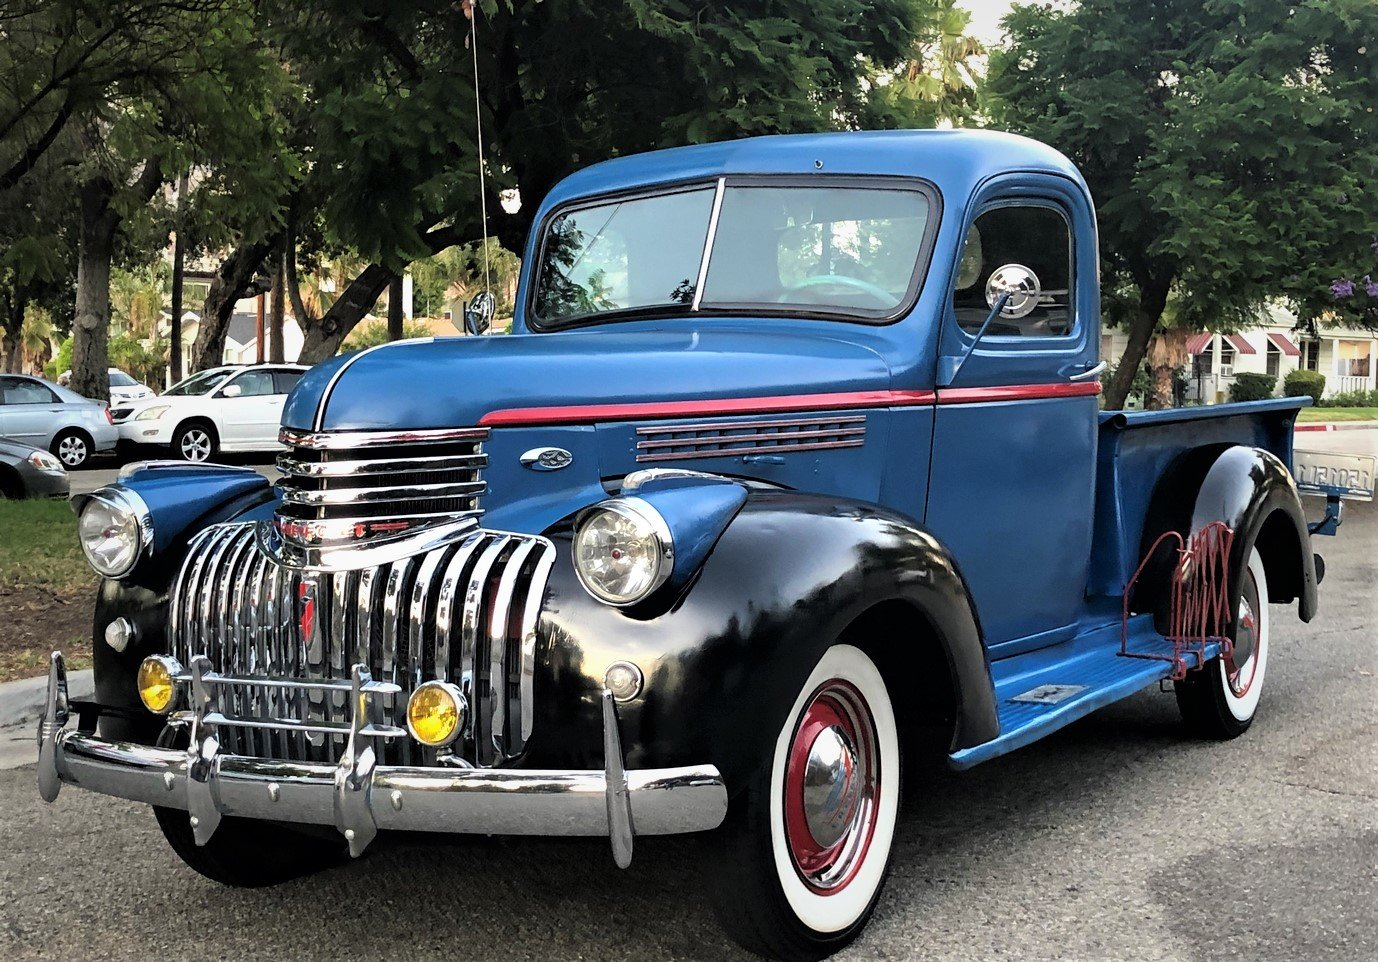 1941 CHEVROLET 1/2-TON PICKUP For Sale (picture 1 of 6)